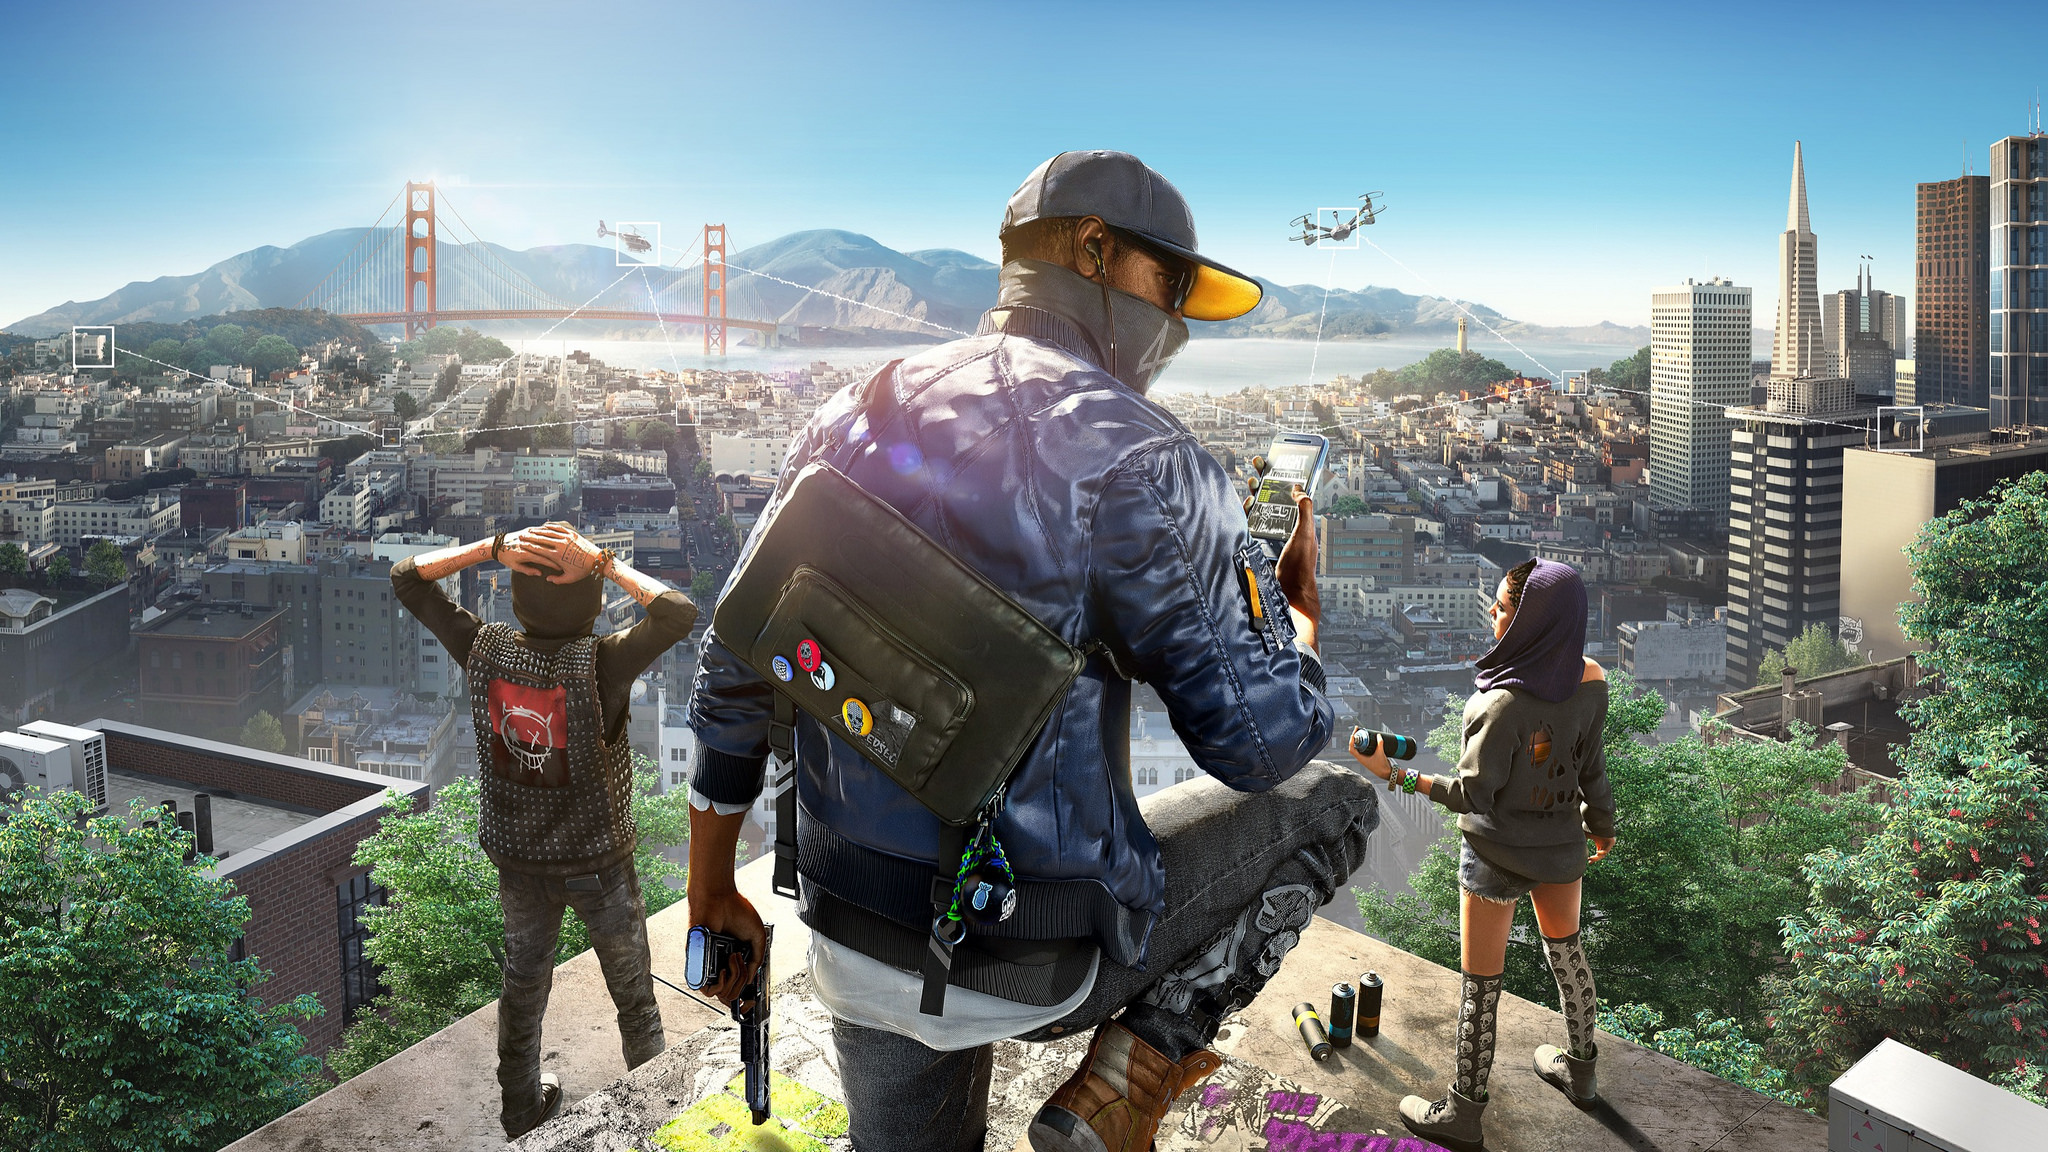 2048x1152 Watch Dogs 2 Hd 2048x1152 Resolution Hd 4k Wallpapers